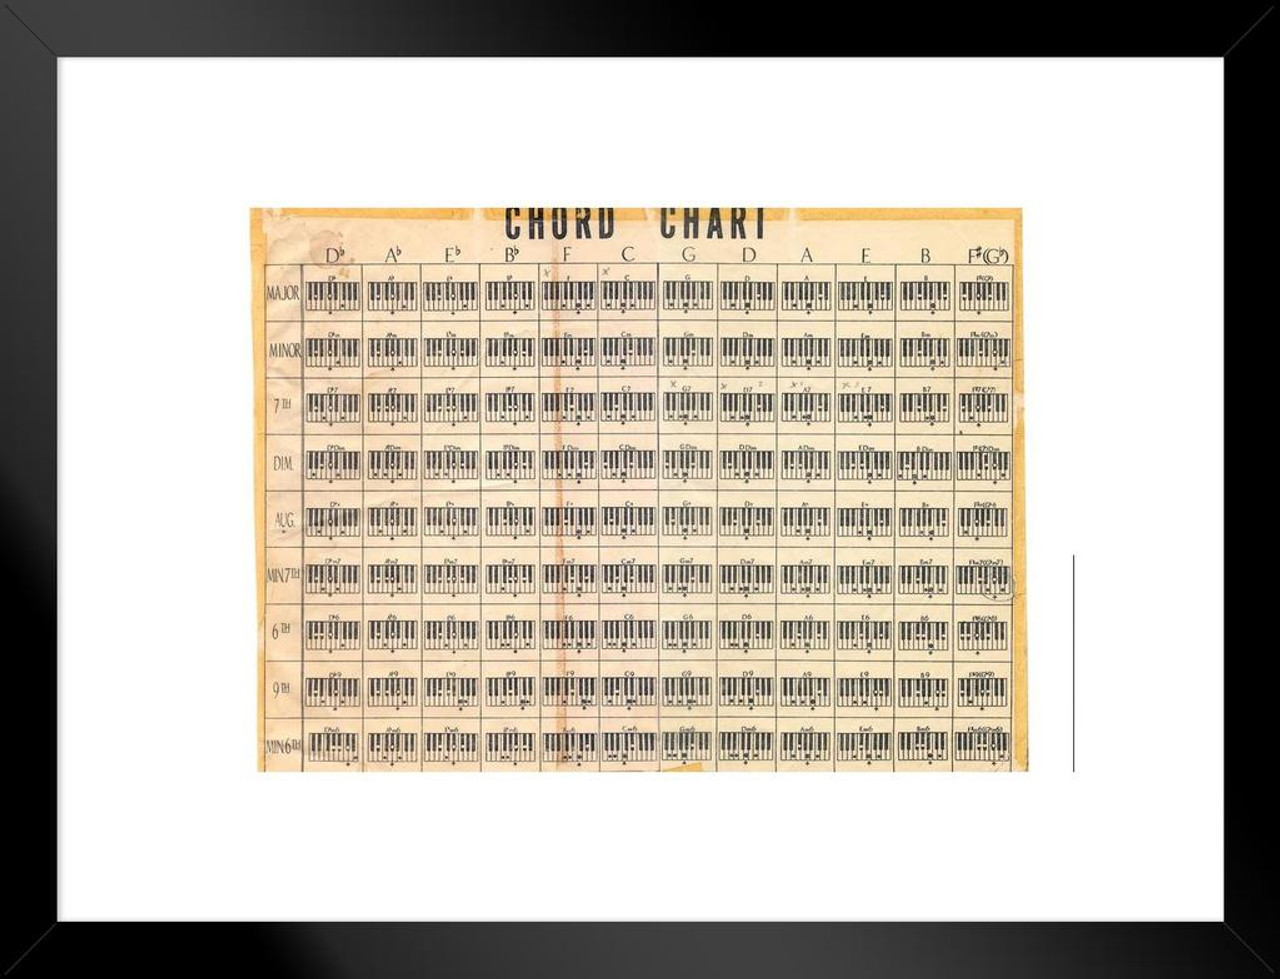 photo about Piano Chords Chart Printable called Tunes Chord Chart Piano Keys Classic Structure Diagram Matted Framed Wall Artwork Print 26x20 inch